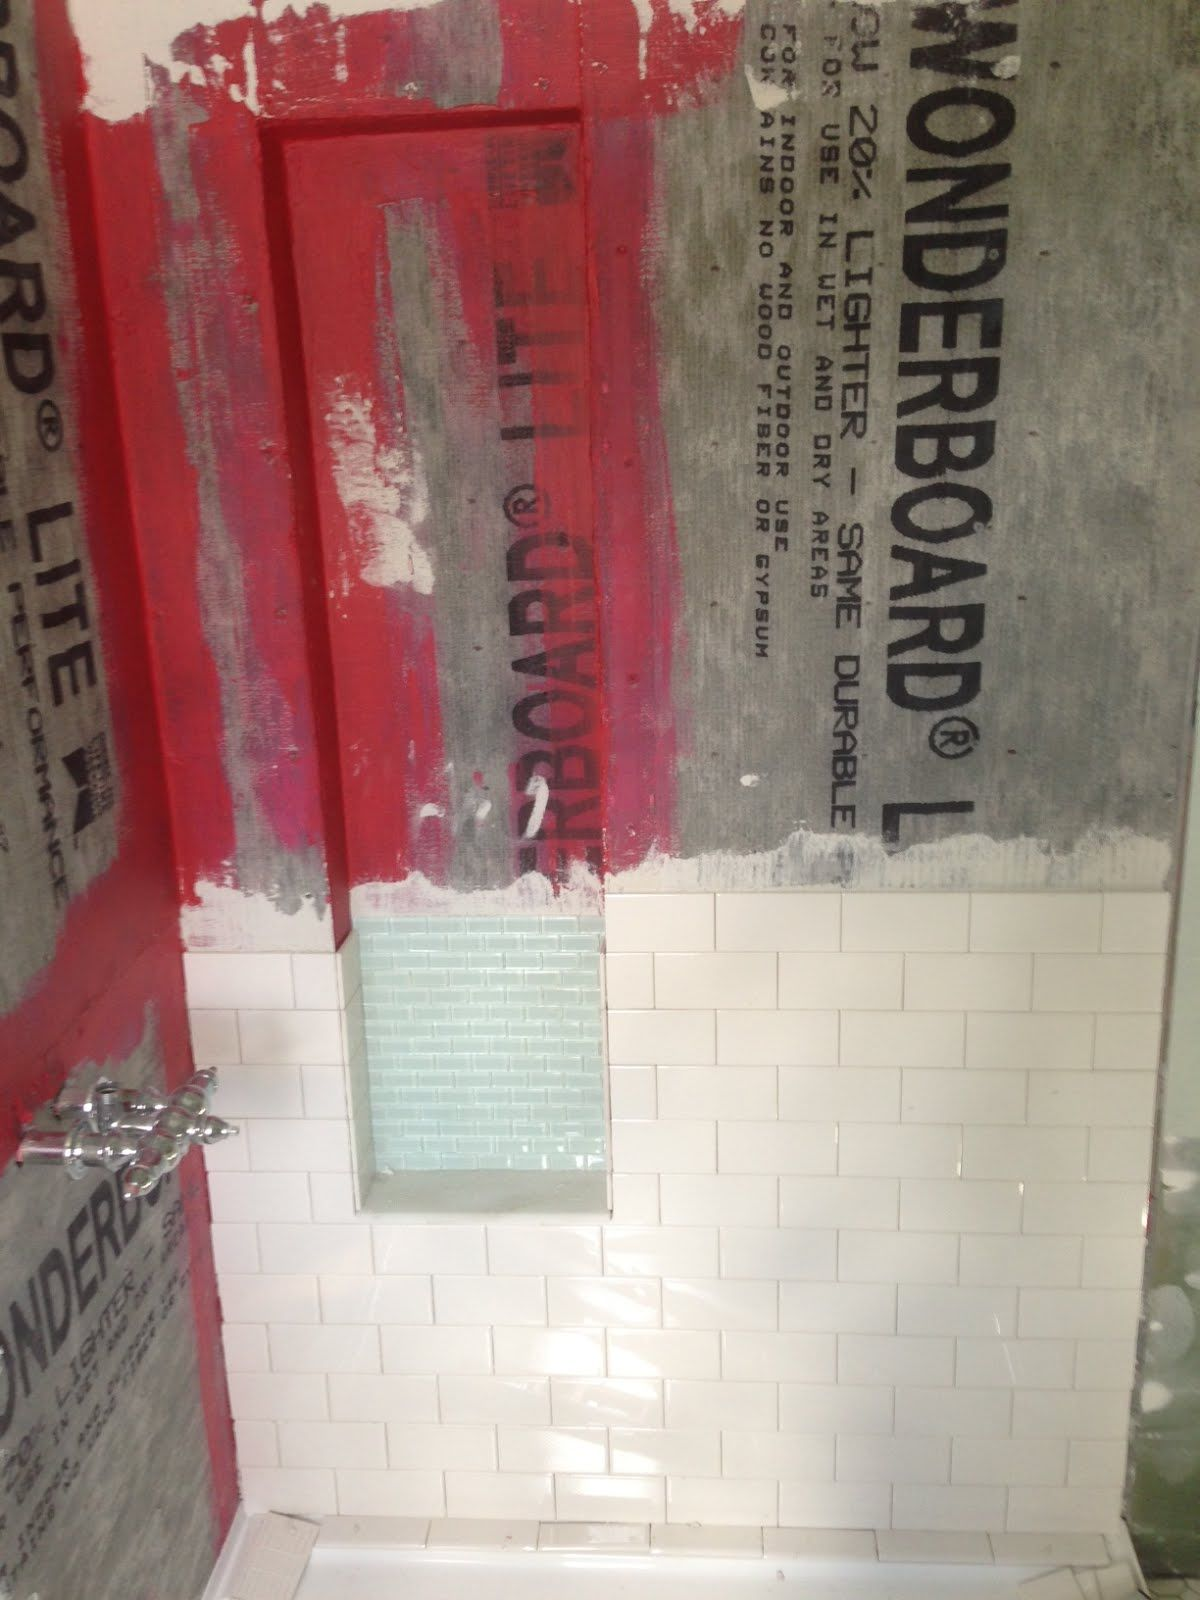 Waterproofing bathroom tile - Diy Shower Niche With Glass Mosaic And White Subway Tiles Using Redgard Waterproof Membrane Www